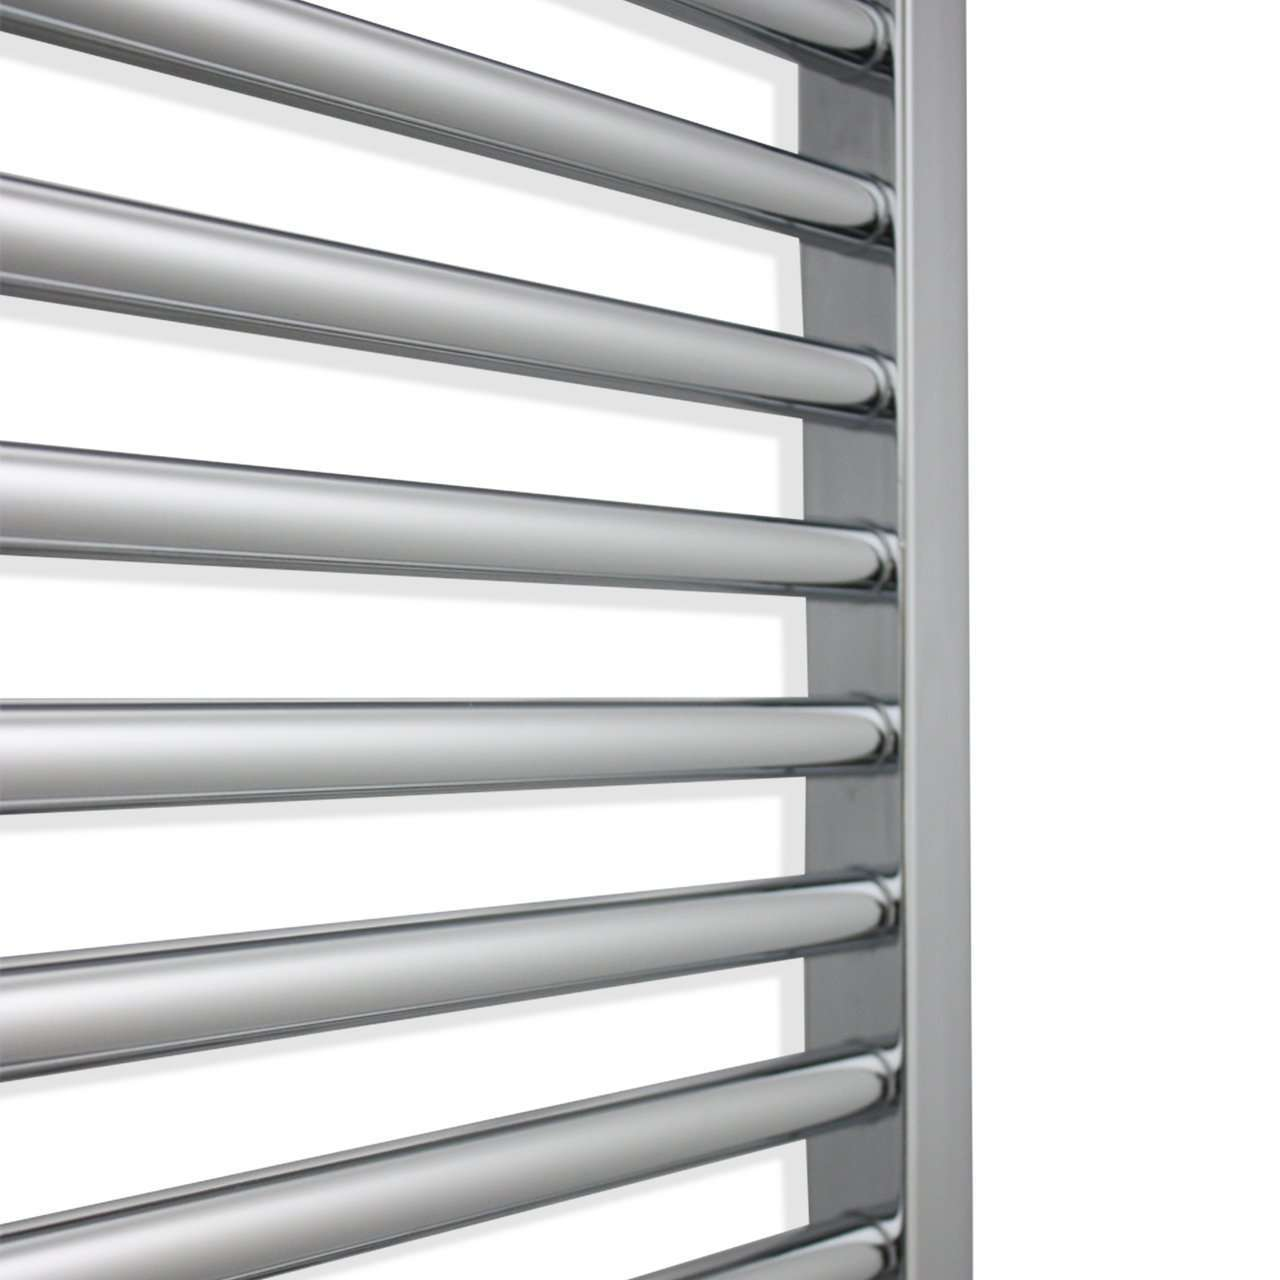 700mm Wide 1000mm High Flat Chrome Heated Towel Rail Radiator HTR